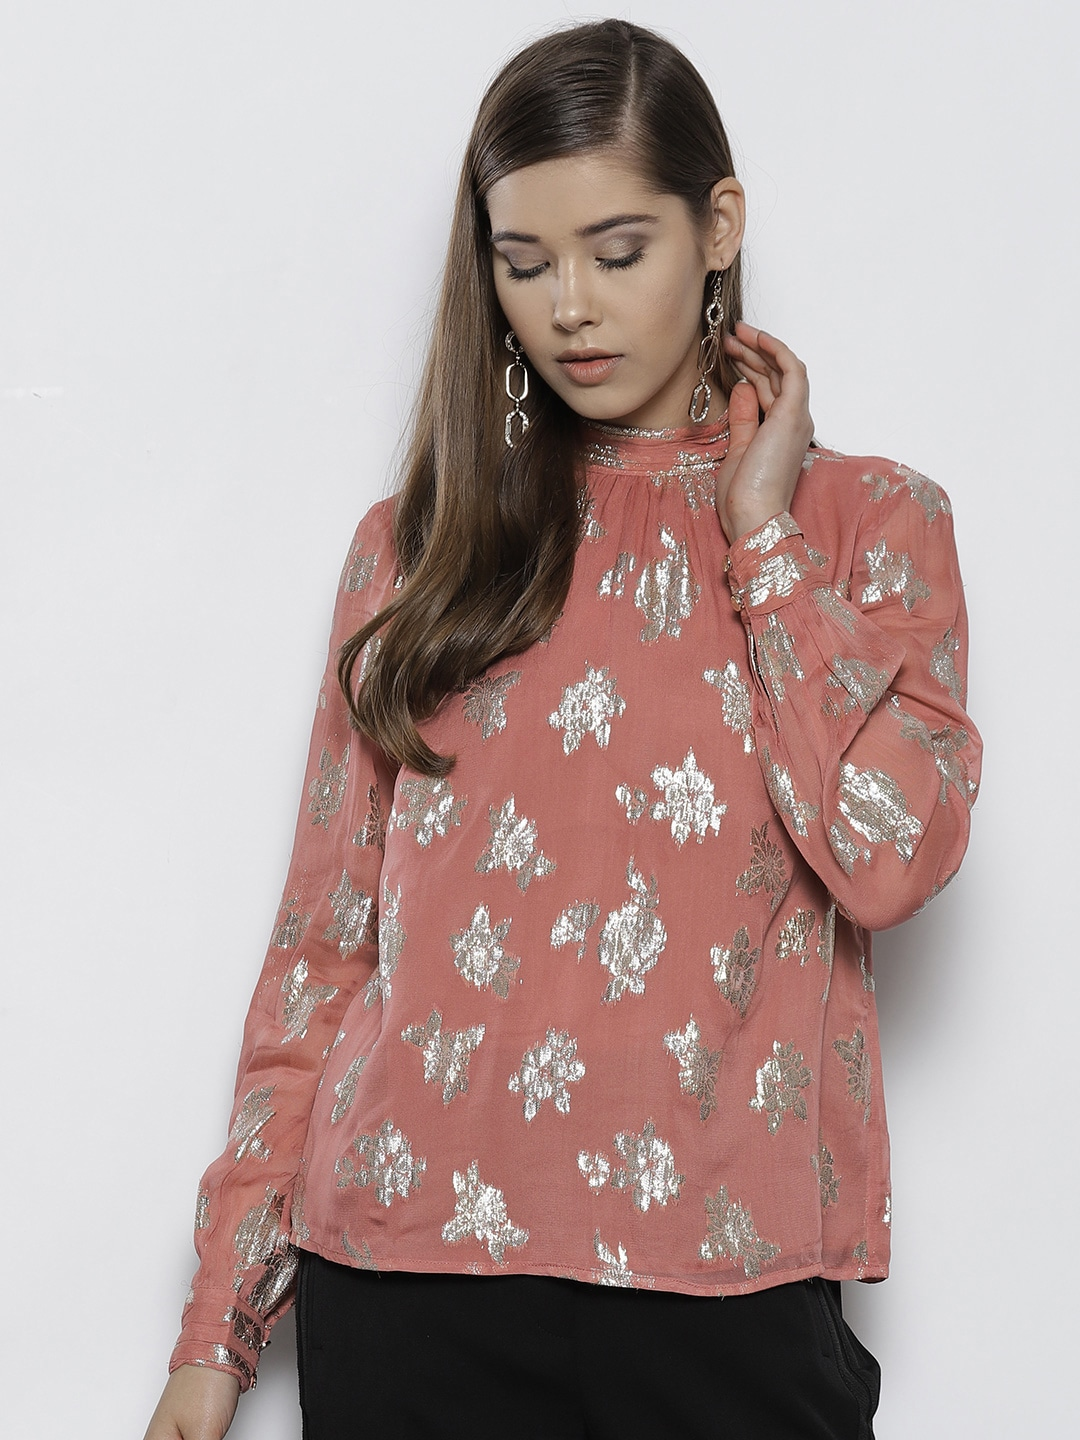 9db94f1ffab2c9 Long Sleeve Tops - Buy Women s Long Sleeve Tops Online from Myntra